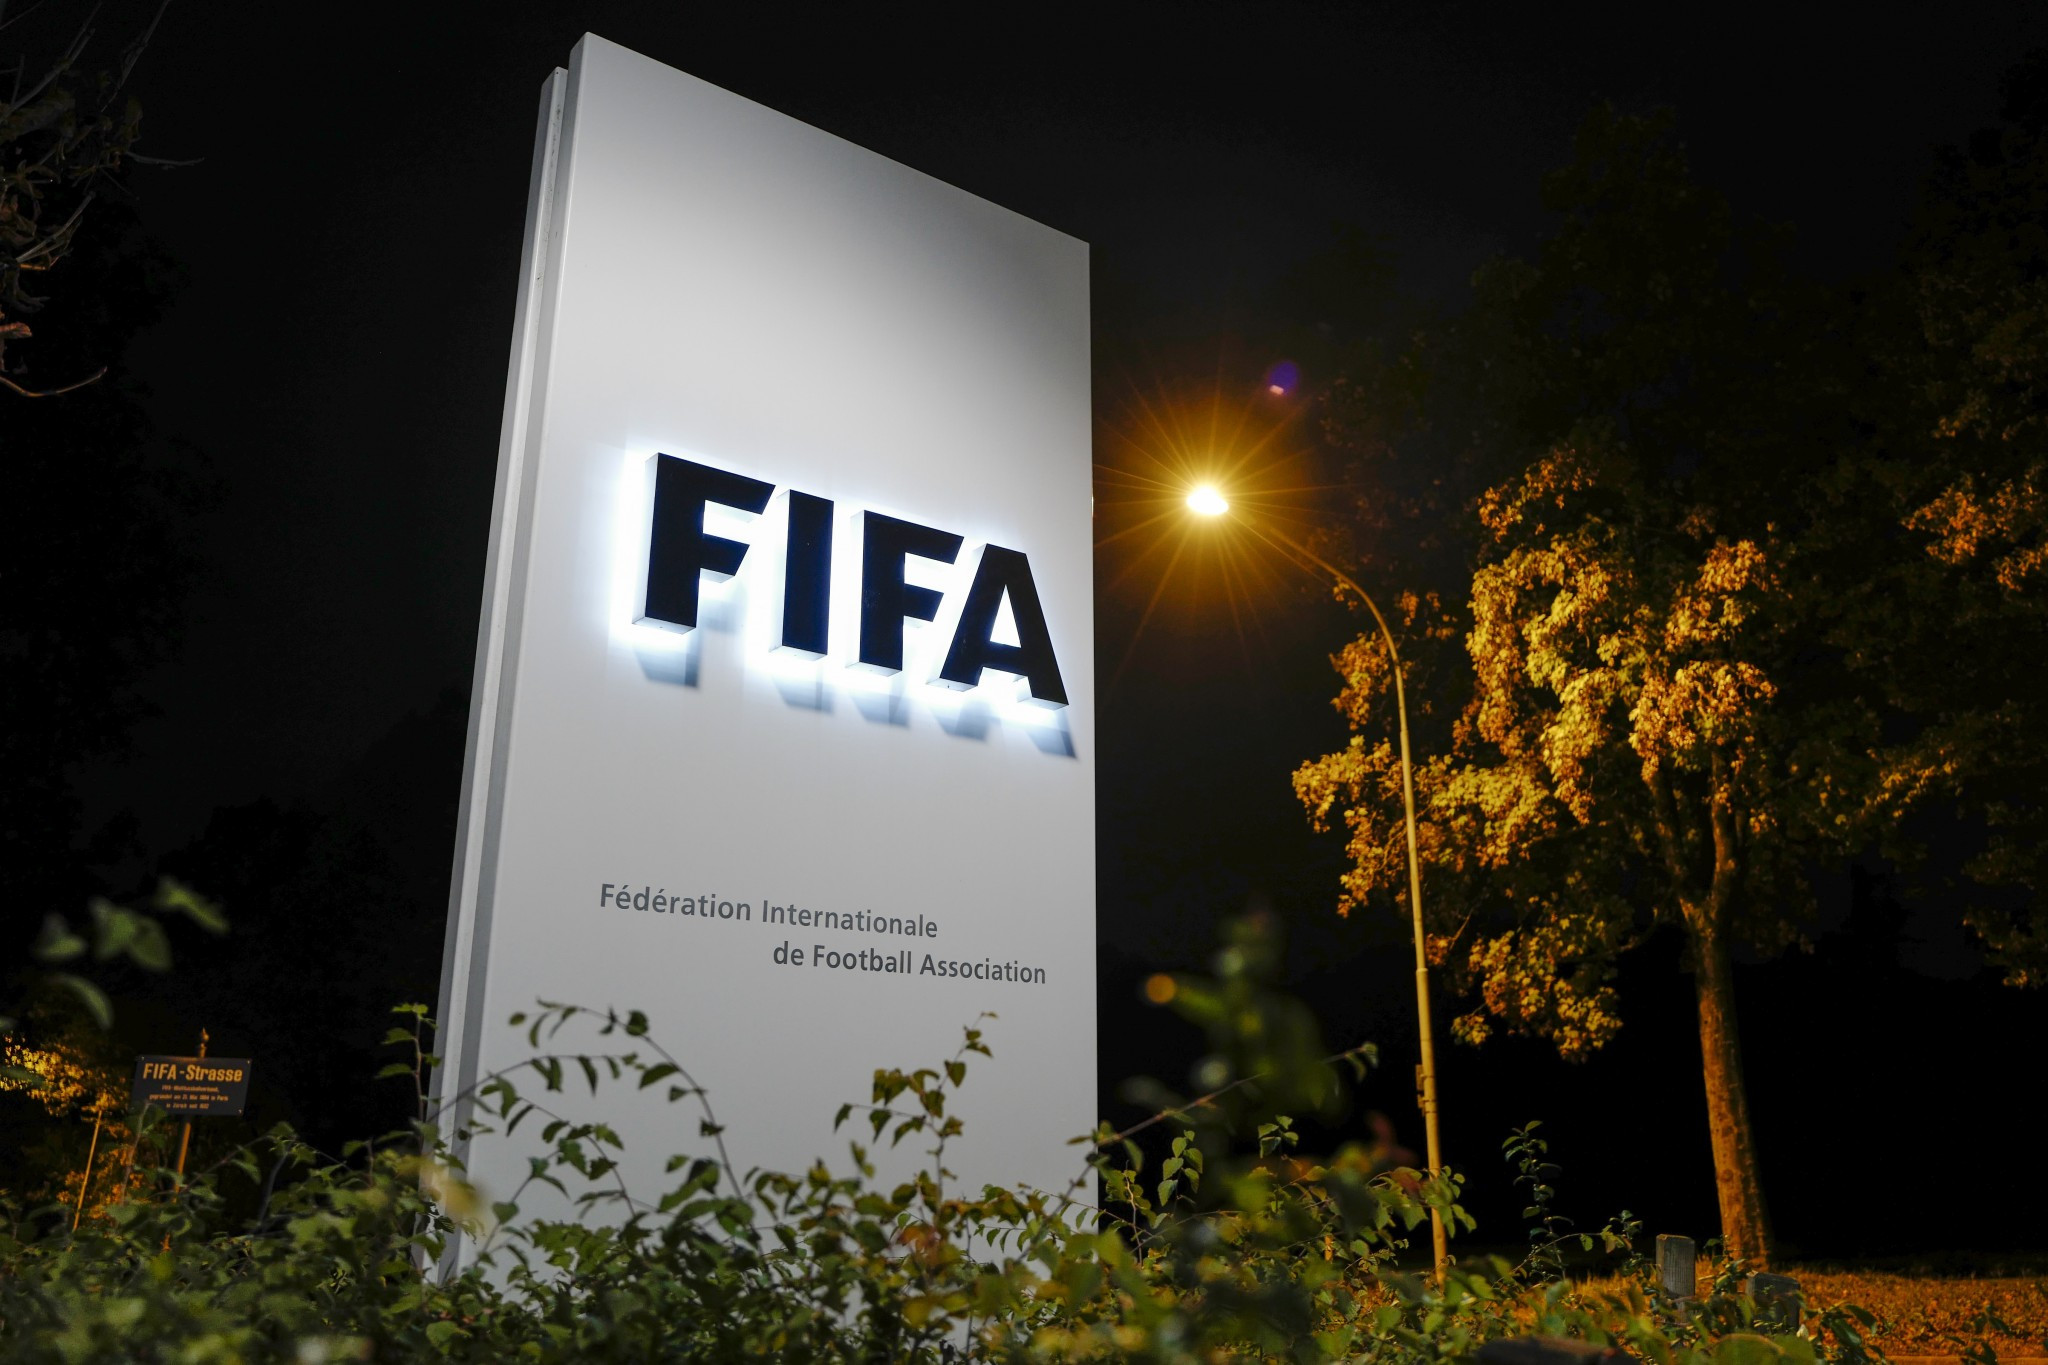 Former member of FIFA's Governance Committee lodges ethics complaint